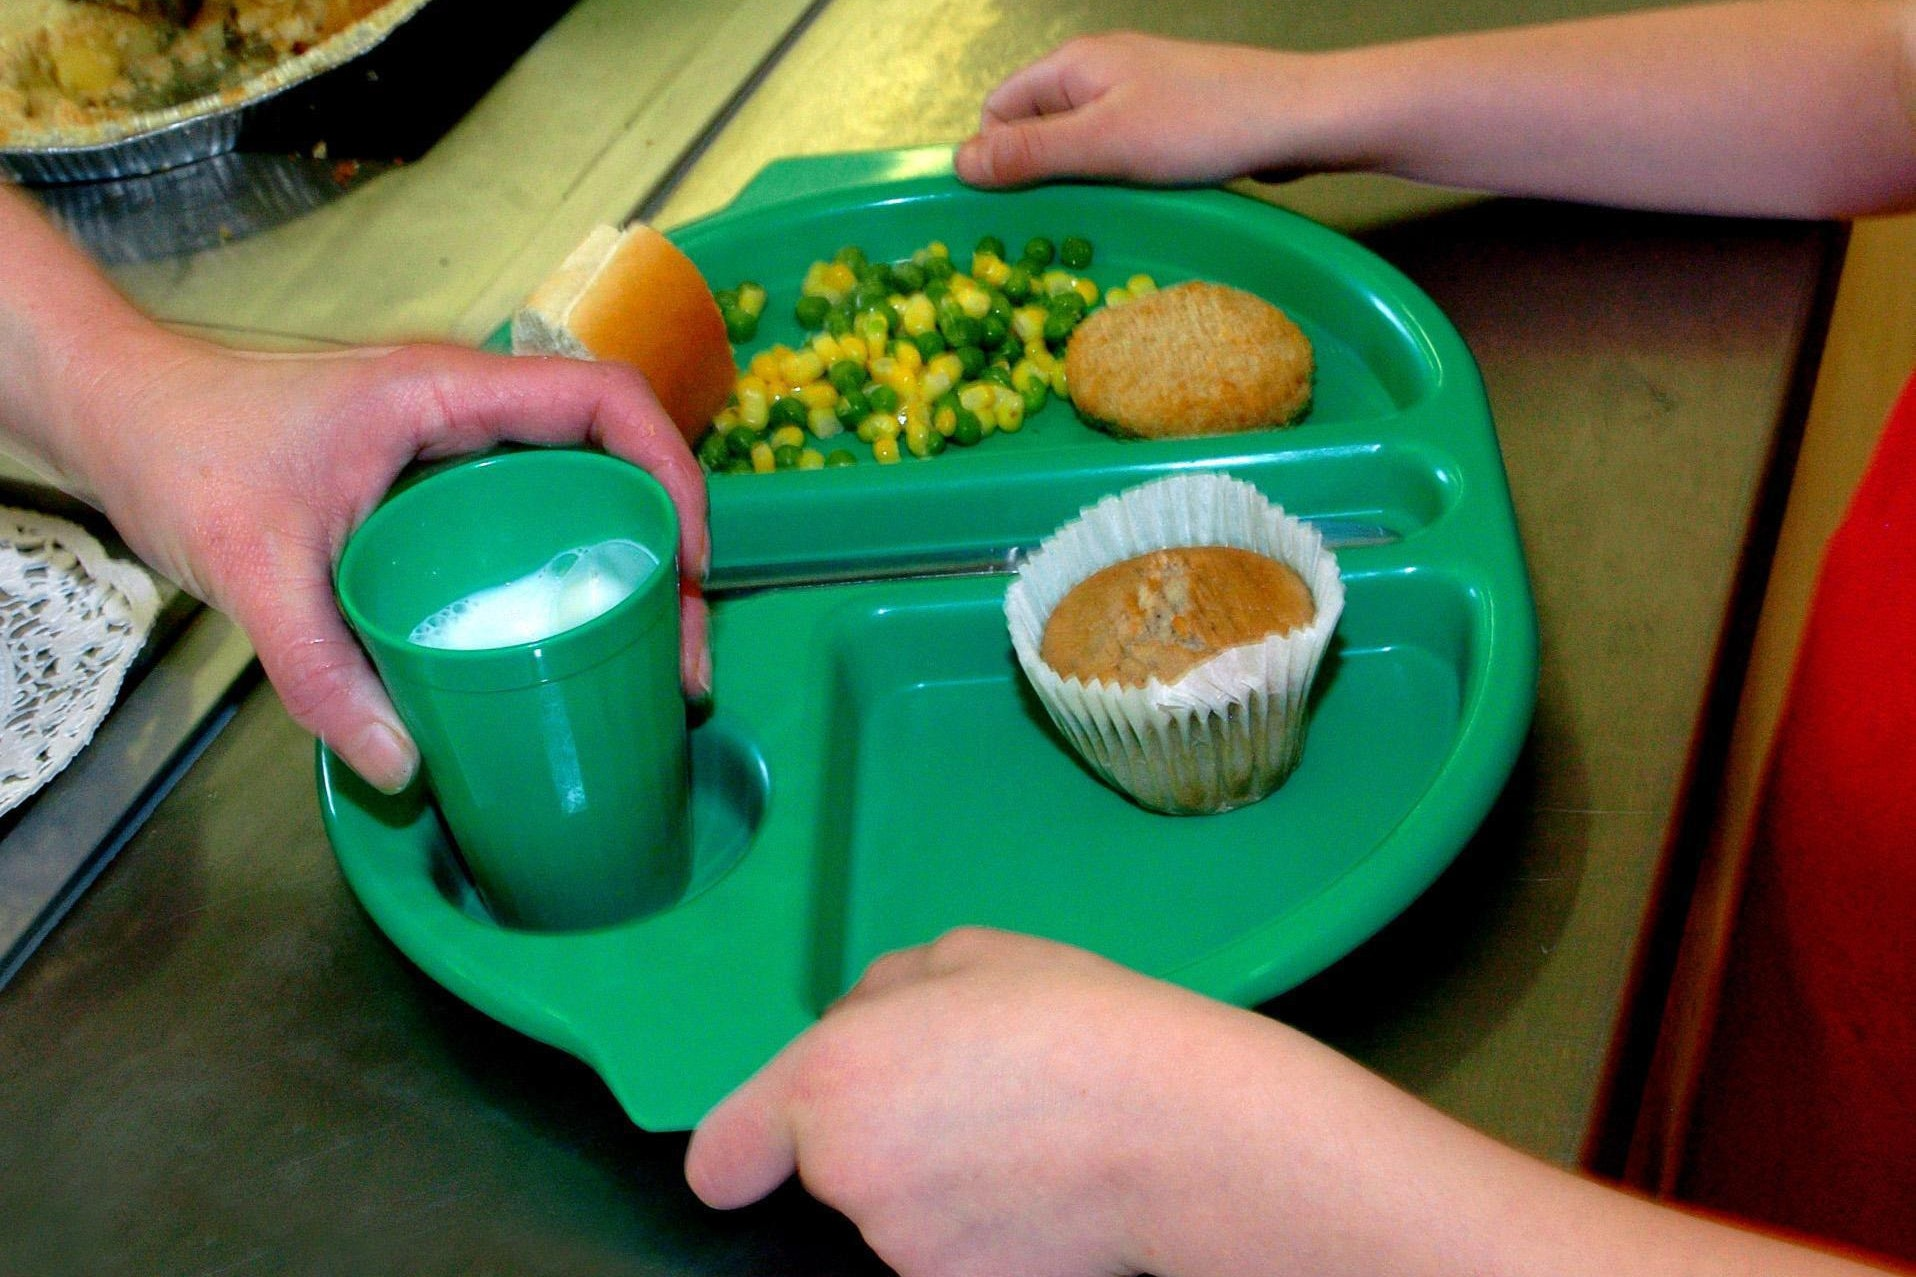 """Campaigners hit out at council over at vegan meal """"refusal"""" in Glasgow nursery"""